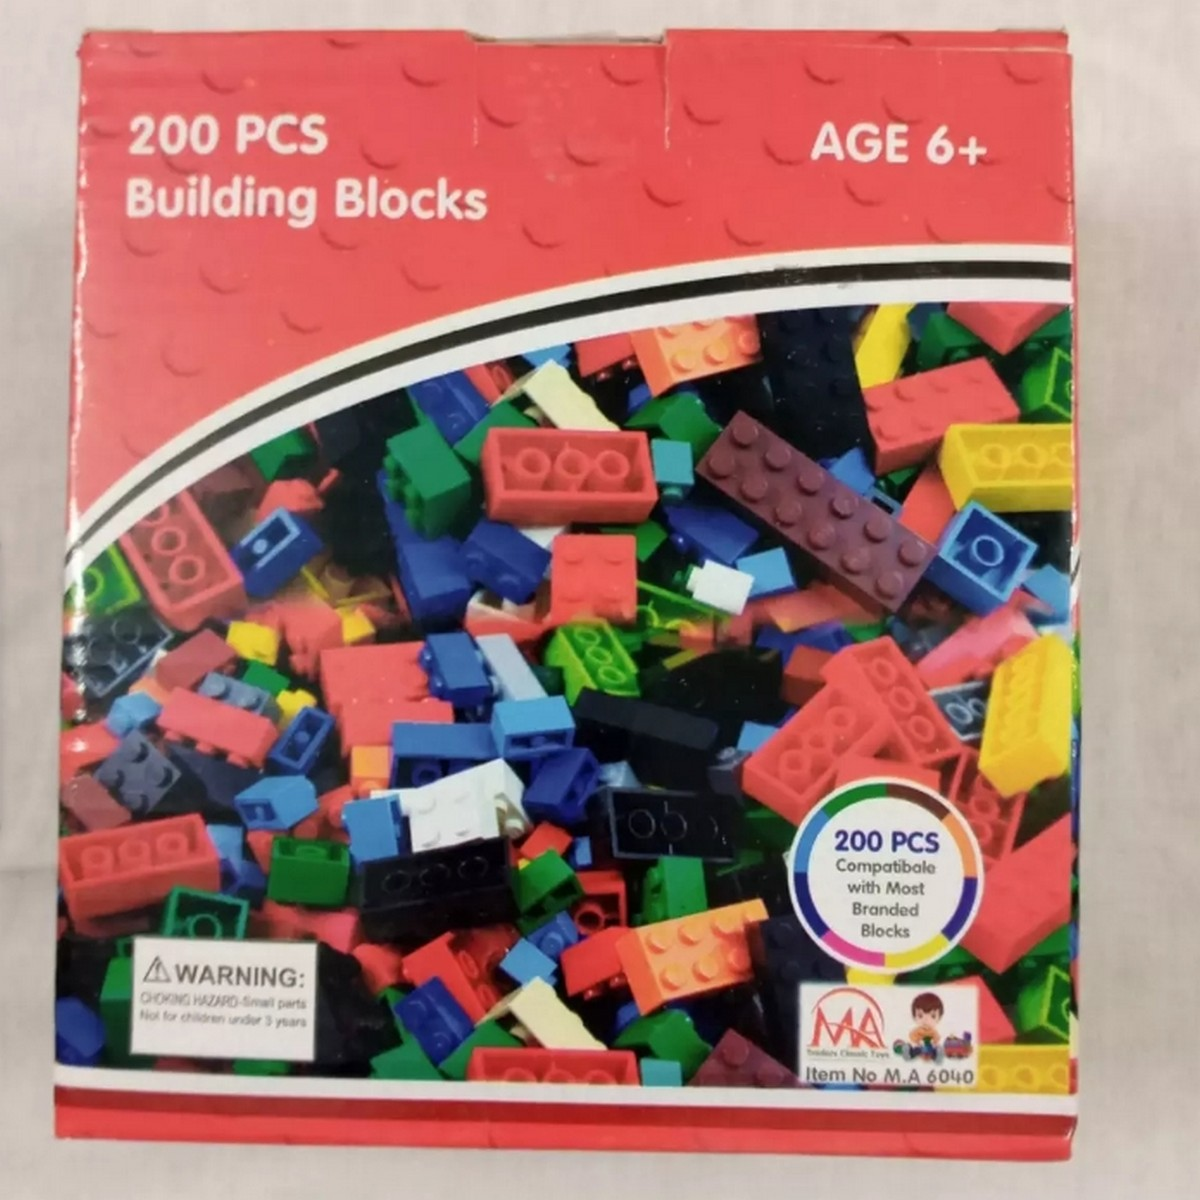 Lego_Building Blocks (Box packed) 300+ pieces